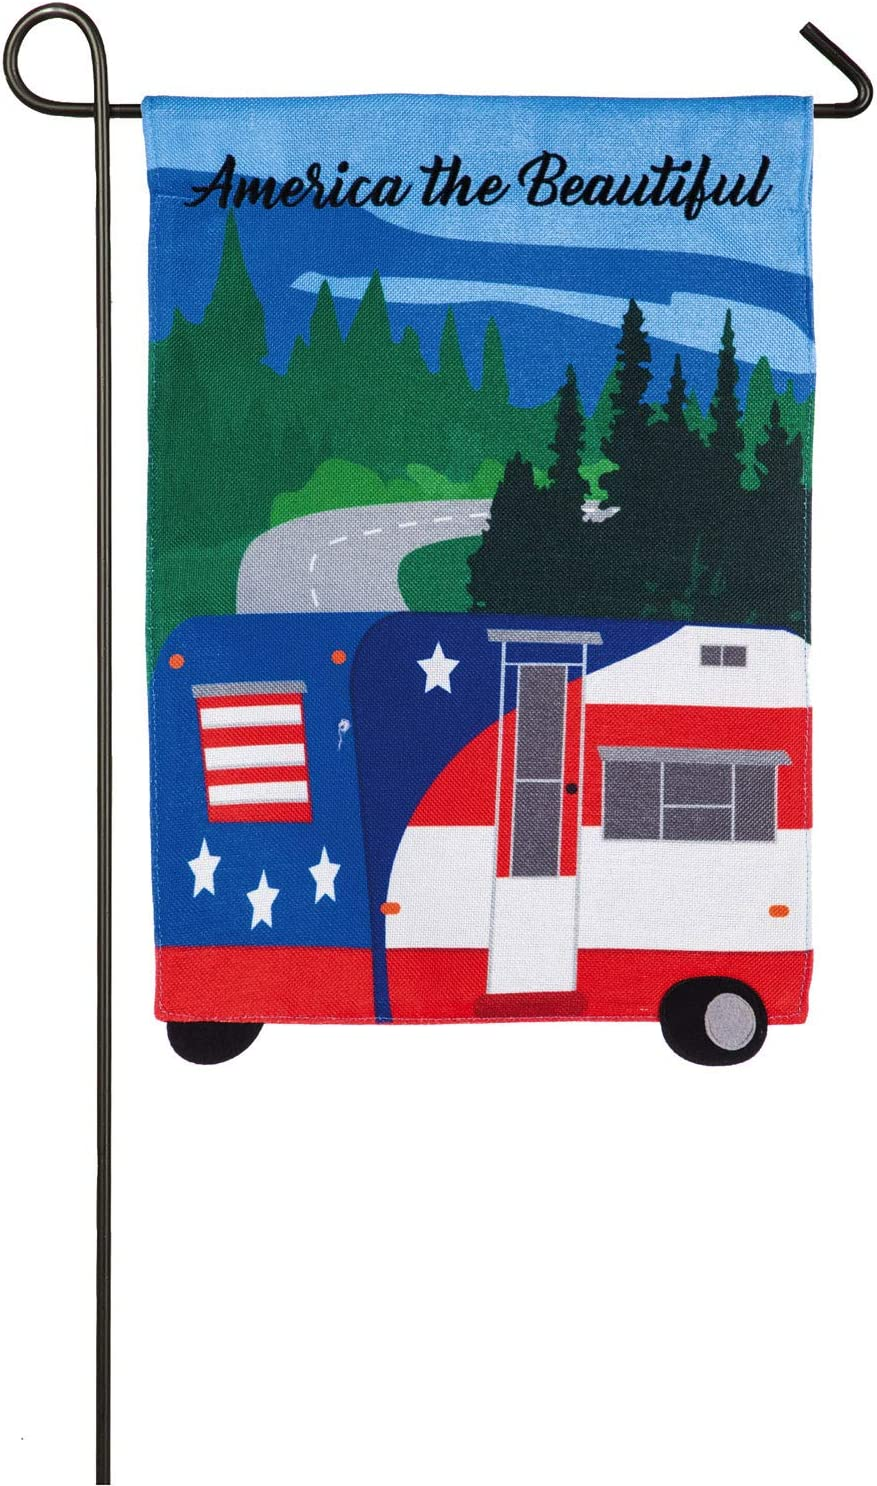 Evergreen Flag America The Beautiful Camper Double Sided Garden House Flag - 13 x 18 Inches Fade and Weather Resistant Outdoor Flag for Homes, Yards and Gardens